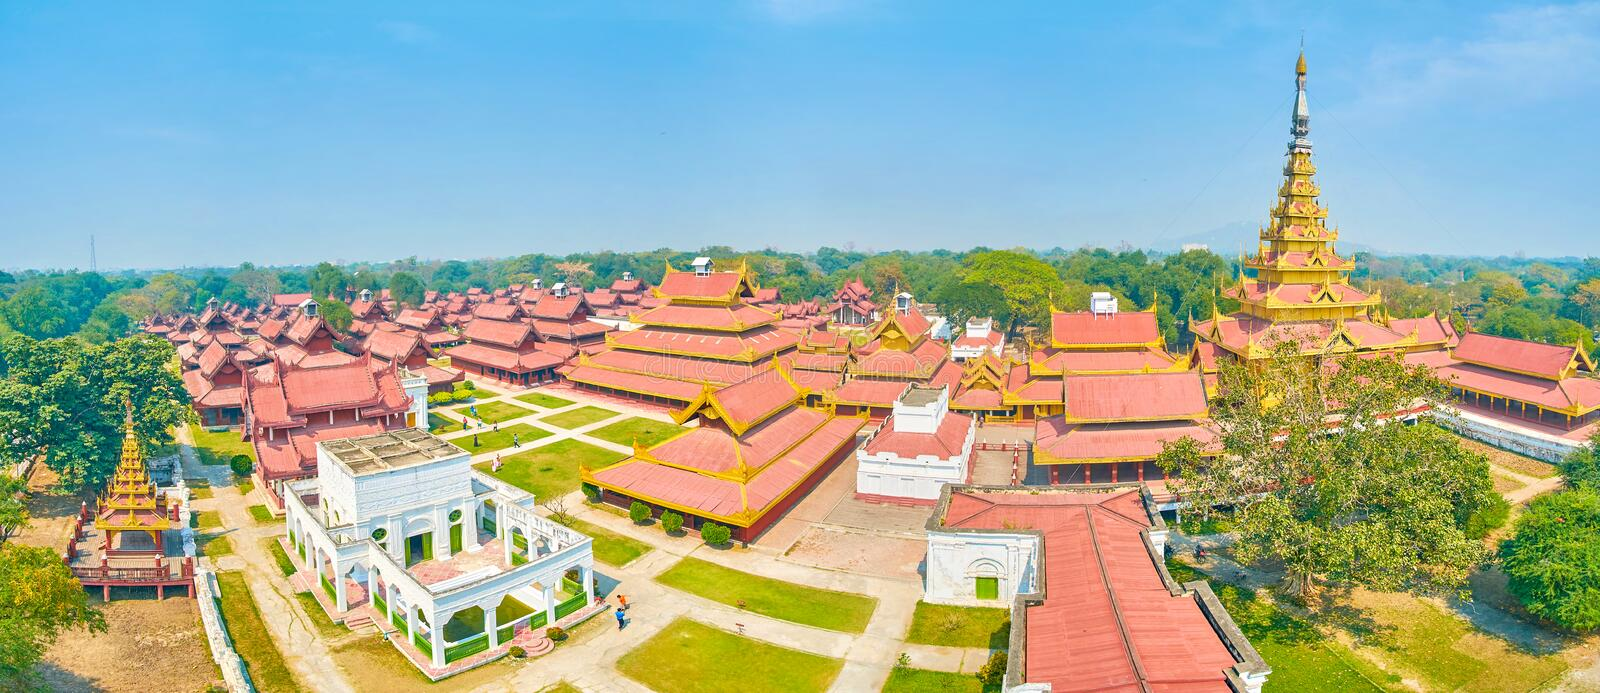 Panorama of Royal Palace in Mandalay, Myanmar. Panoramic view on Royal Palace in Mandalay with its beautiful oriental styled buildings and Golden Spire tower stock images